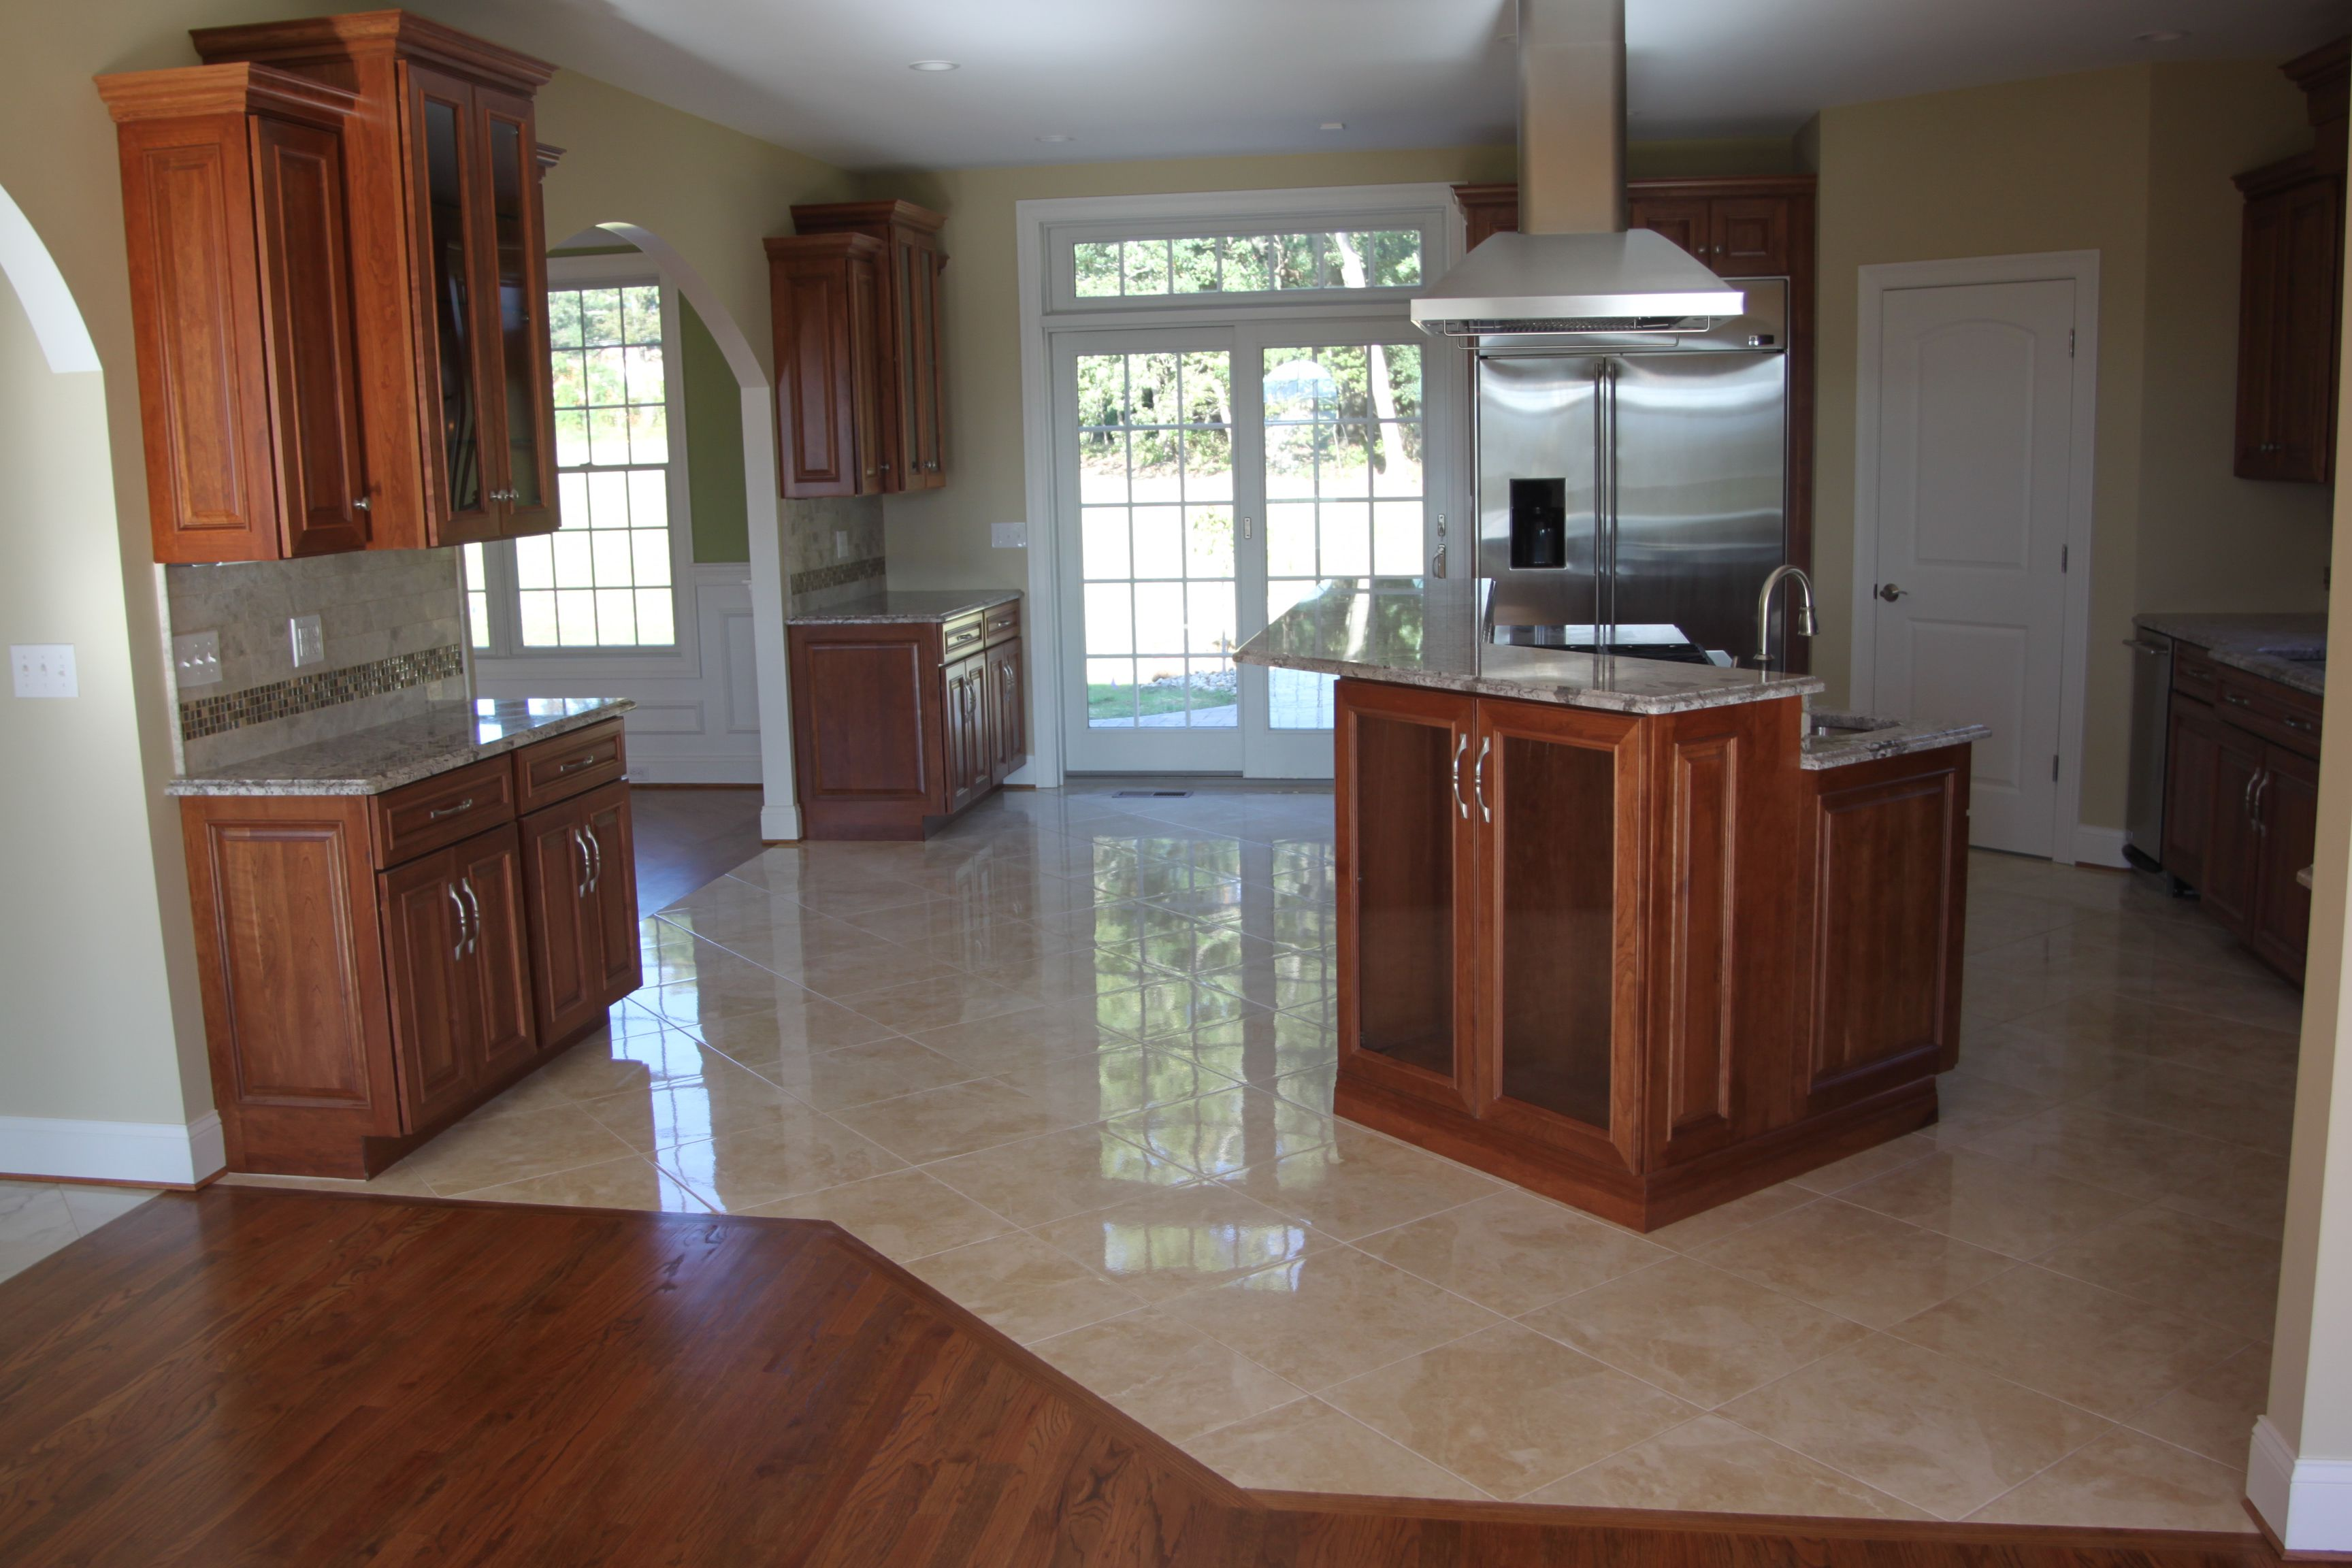 Floor tile designs ideas to enhance your floor appearance for Kitchen wood design